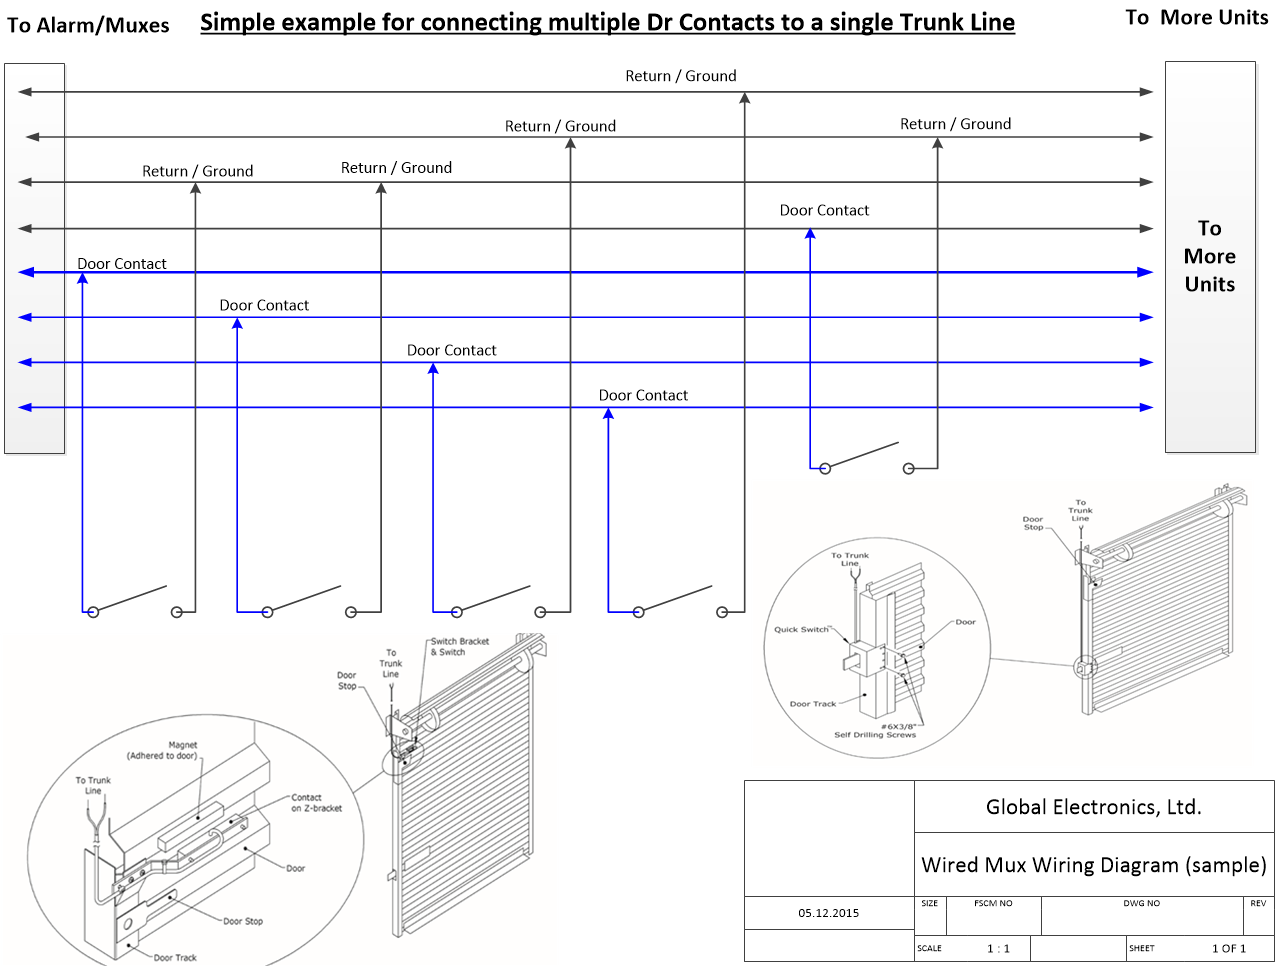 wired diagram wired mux wiring diagram example wire diagrams uk wired mux wiring diagram example